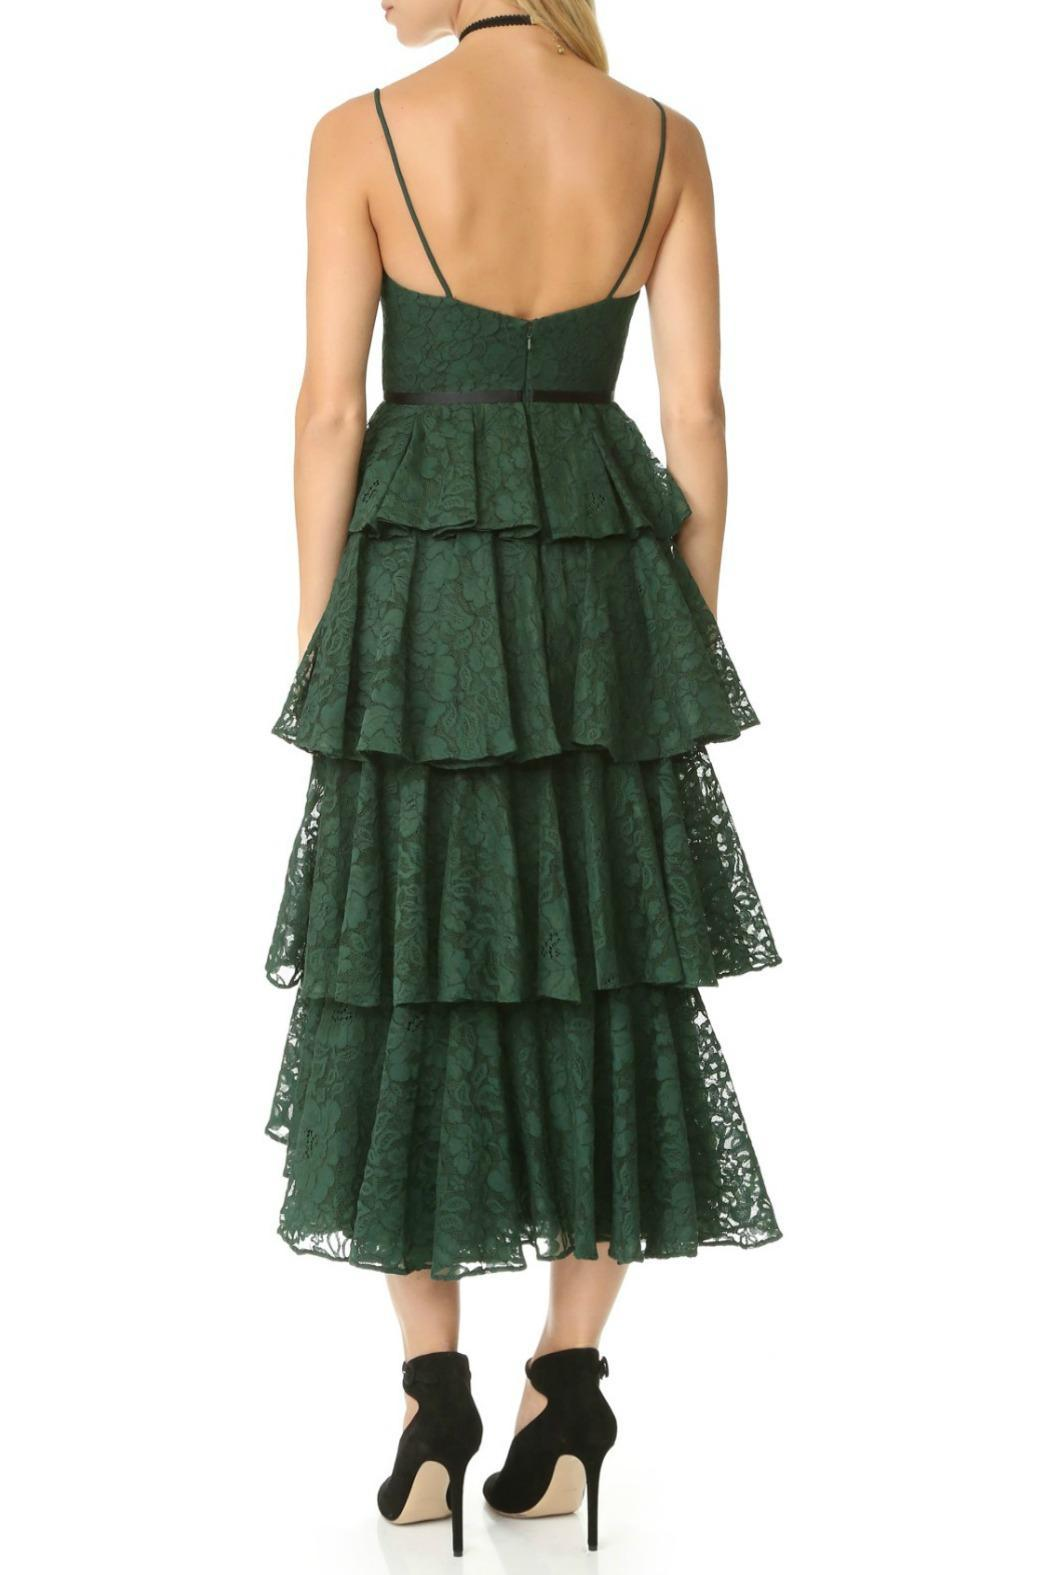 Cynthia Rowley Lace Tiered Dress From Canada By Two Fifty